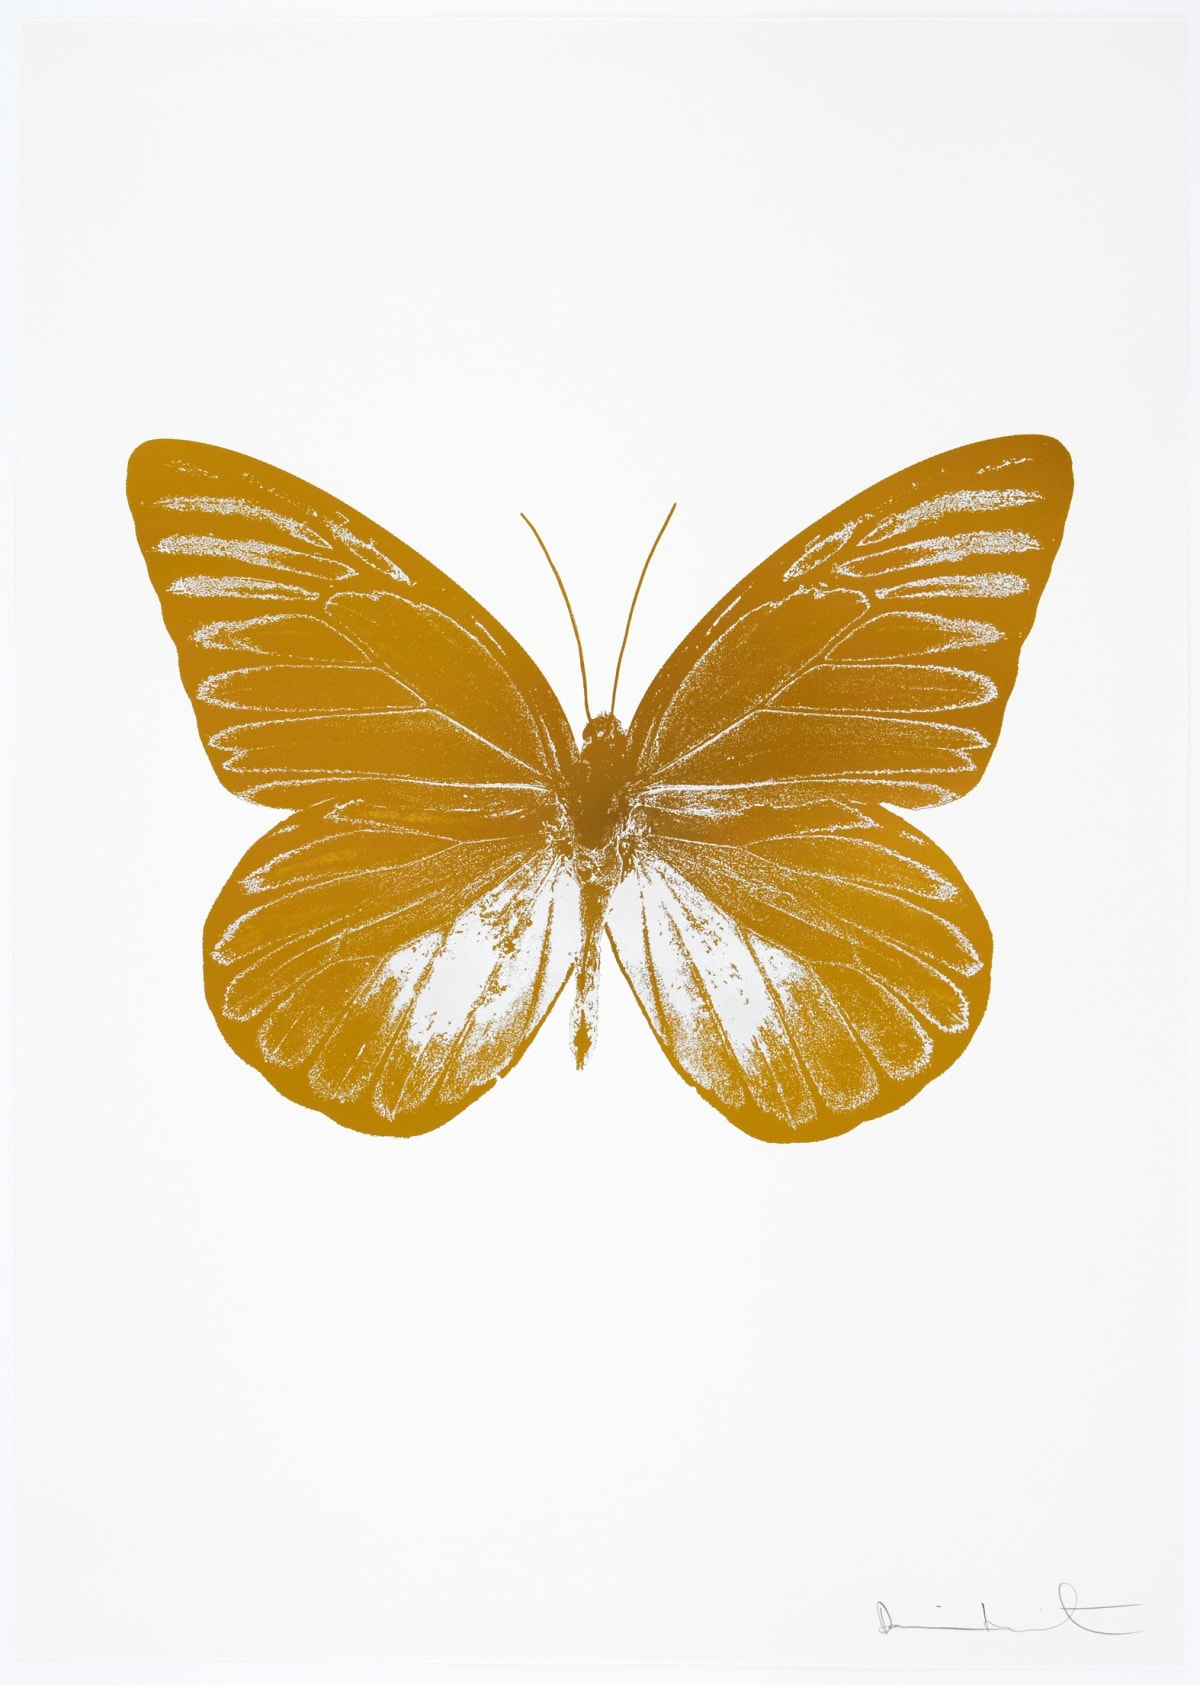 Damien Hirst The Souls I - Paradise Copper/Cotton White, 2010 2 colour foil block on 300gsm Arches 88 archival paper. Signed and numbered. Published by Paul Stolper and Other Criteria 72 x 51cm OC7792 / 659-55 Edition of 15